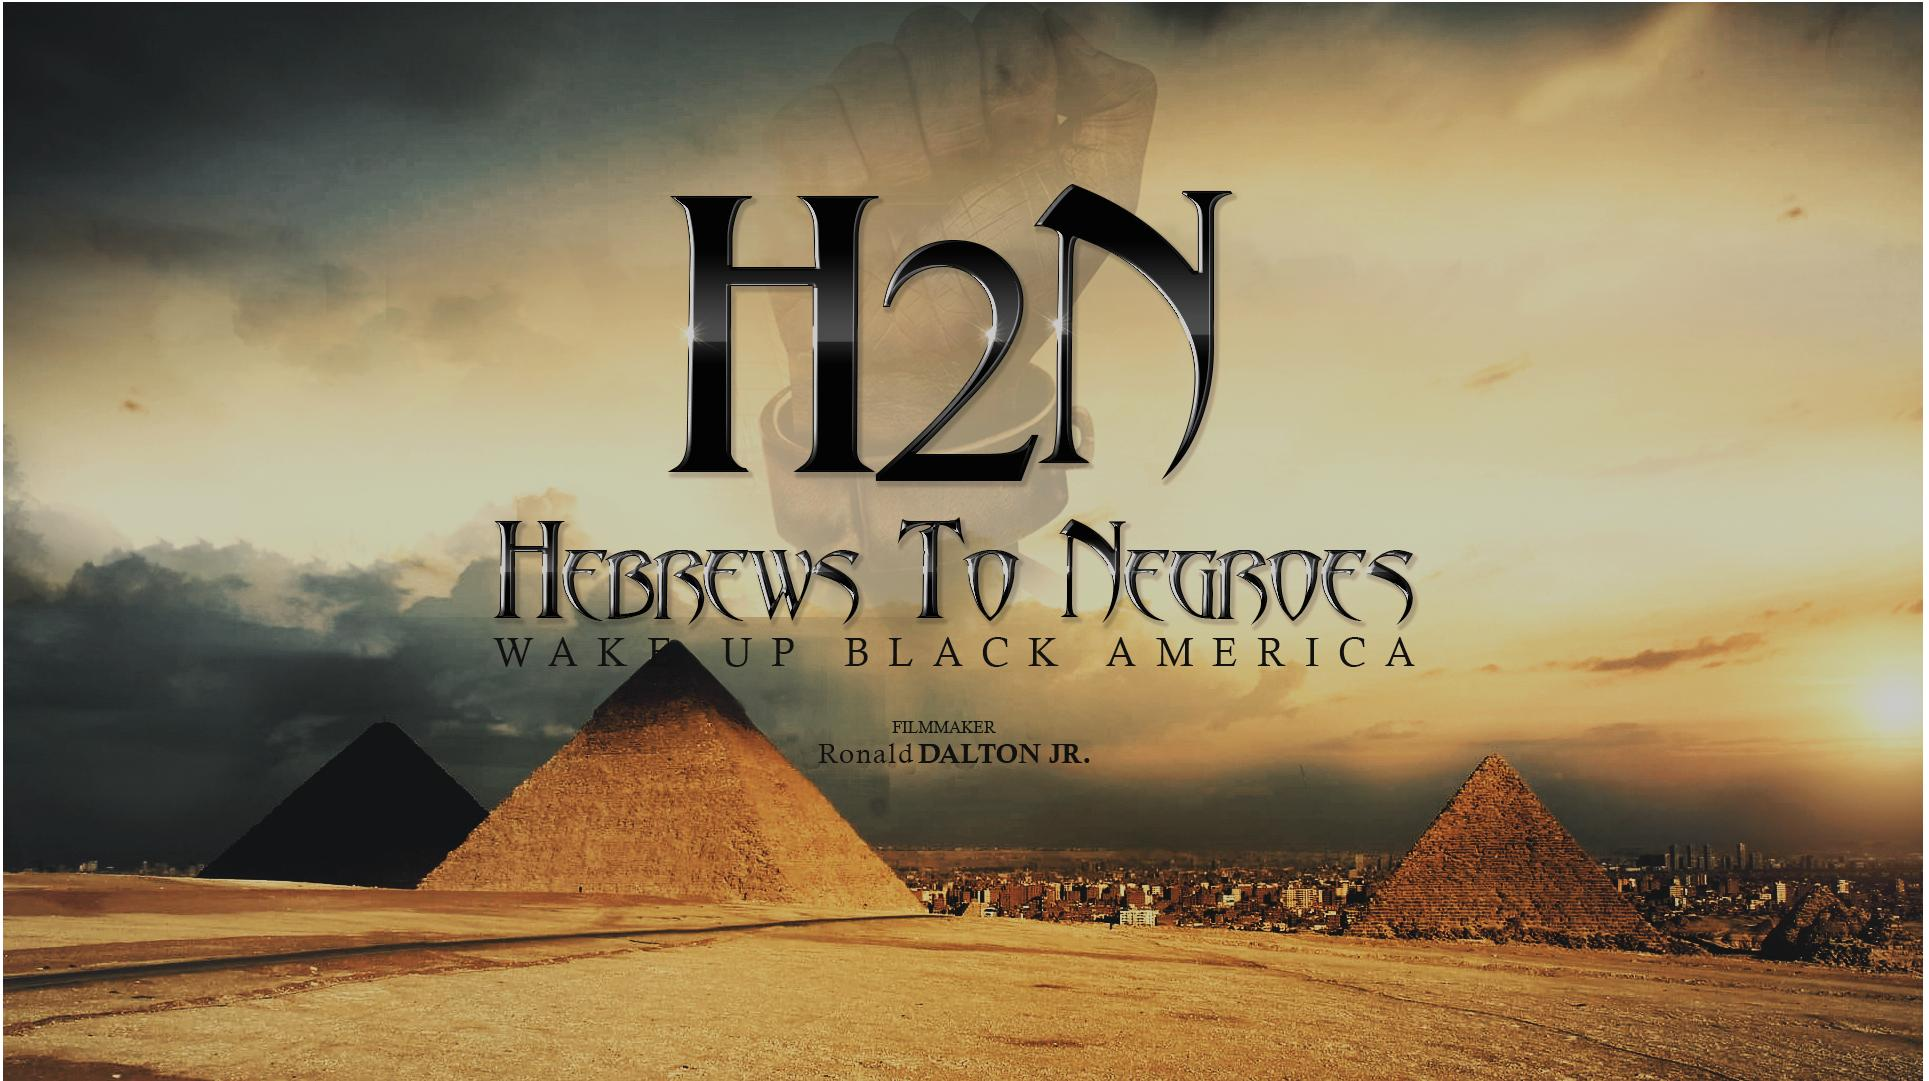 Hebrews to Negroes: Wake Up Black America (2018) - IMDb